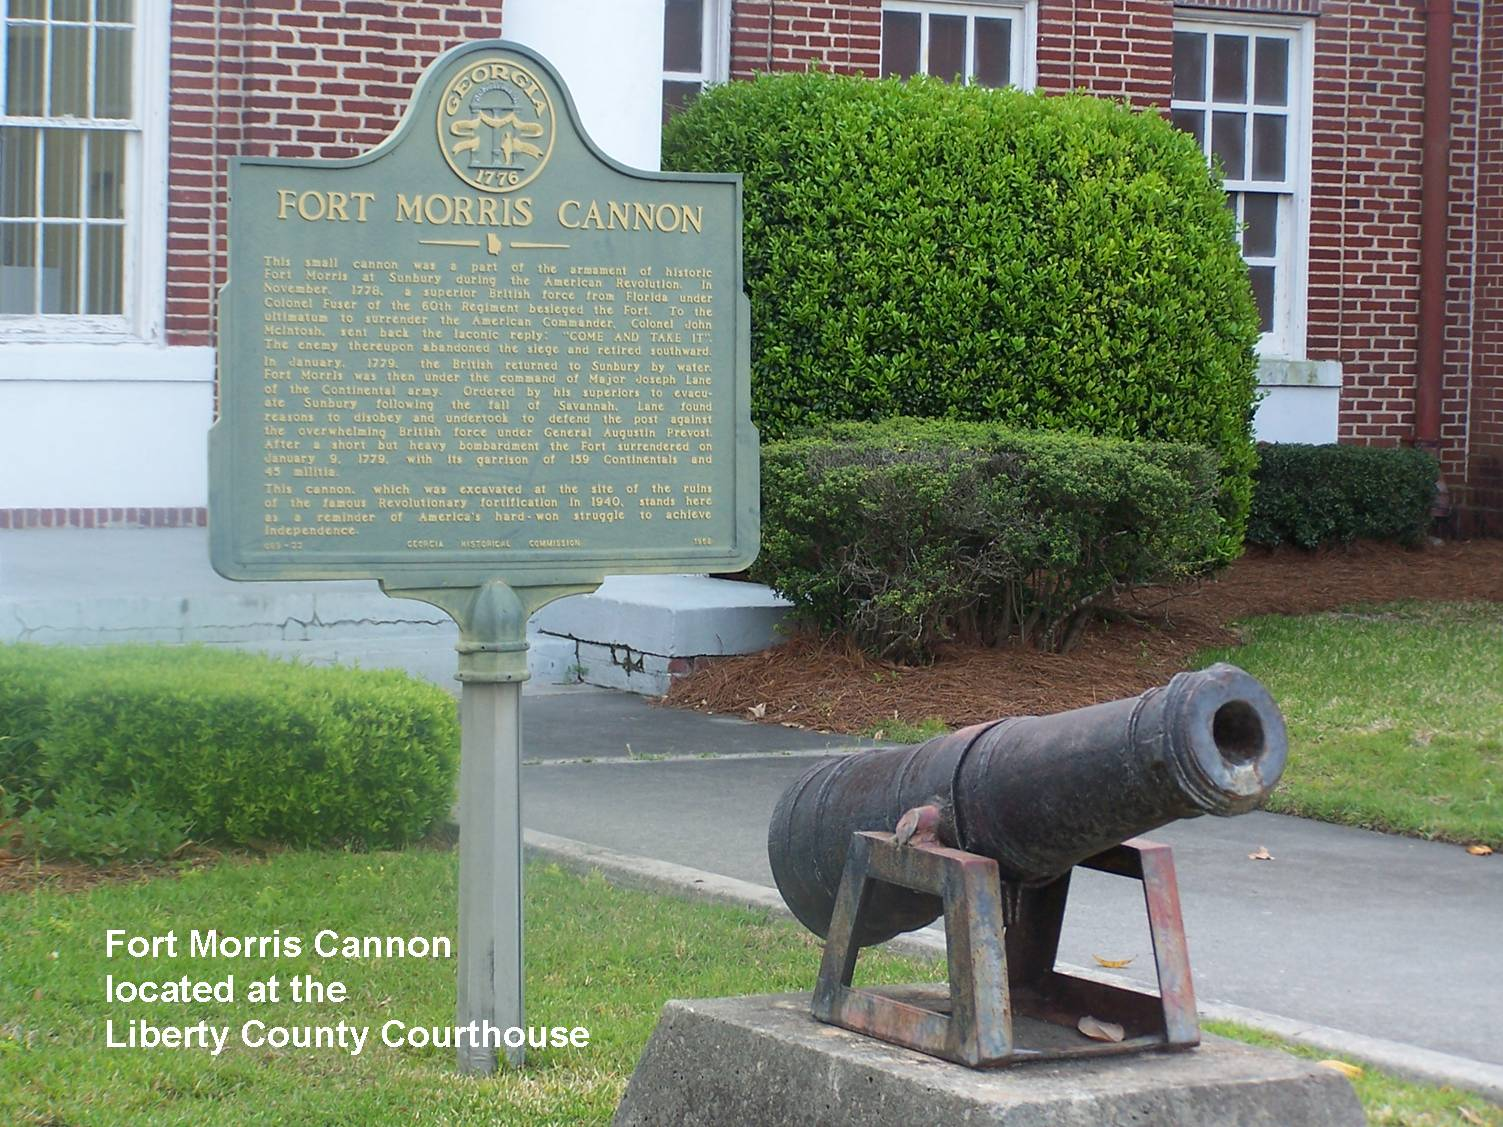 Fort Morris Cannon Marker